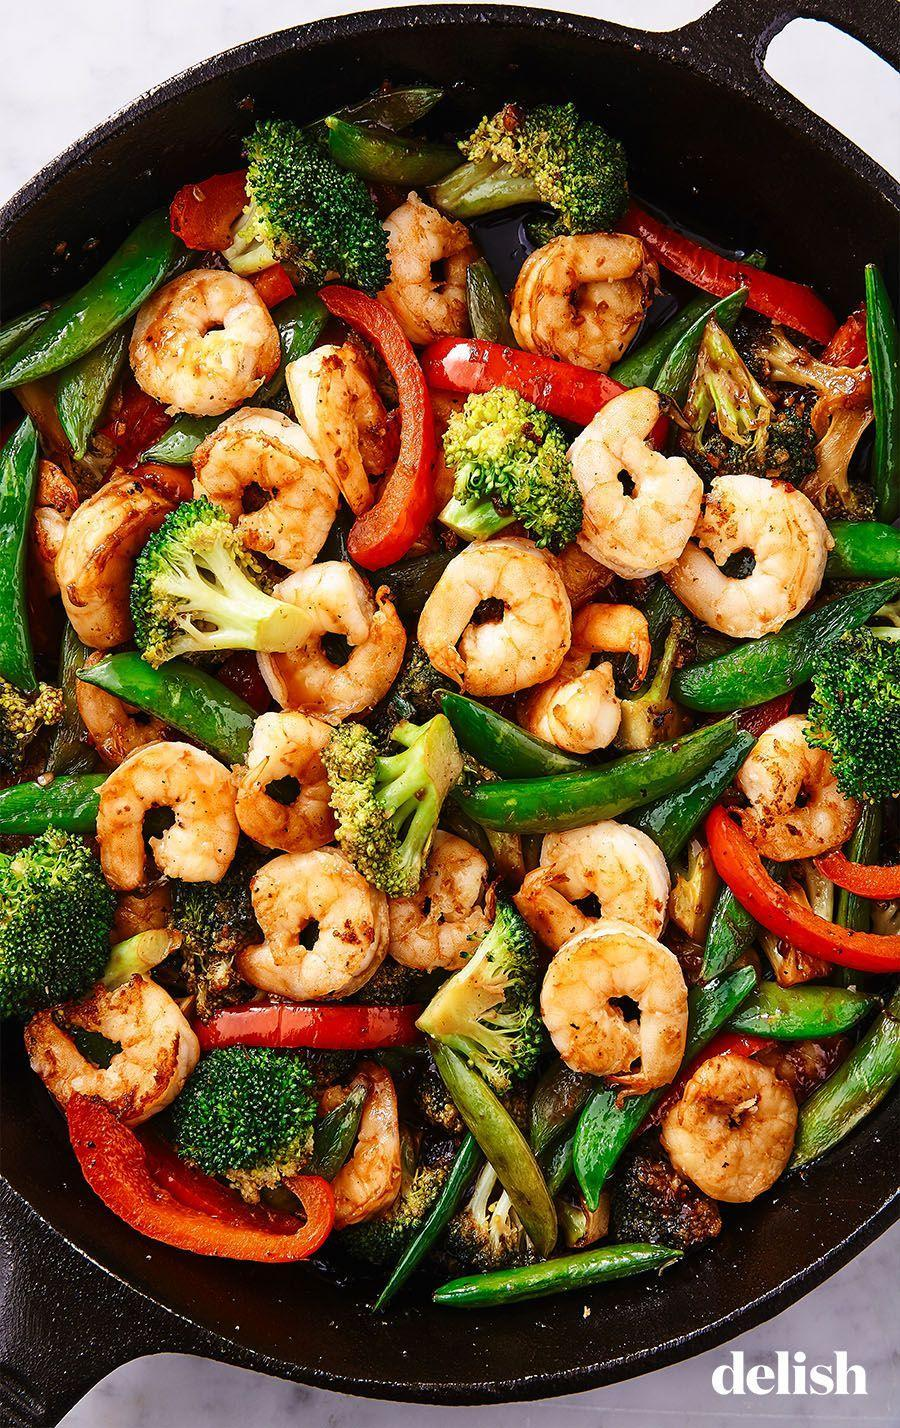 """<p>So simple to throw together, and filled with so much flavor. </p><p>Get the recipe from <a href=""""https://www.delish.com/cooking/recipe-ideas/a25636180/shrimp-stir-fry-recipe/"""" rel=""""nofollow noopener"""" target=""""_blank"""" data-ylk=""""slk:Delish"""" class=""""link rapid-noclick-resp"""">Delish</a>.</p>"""